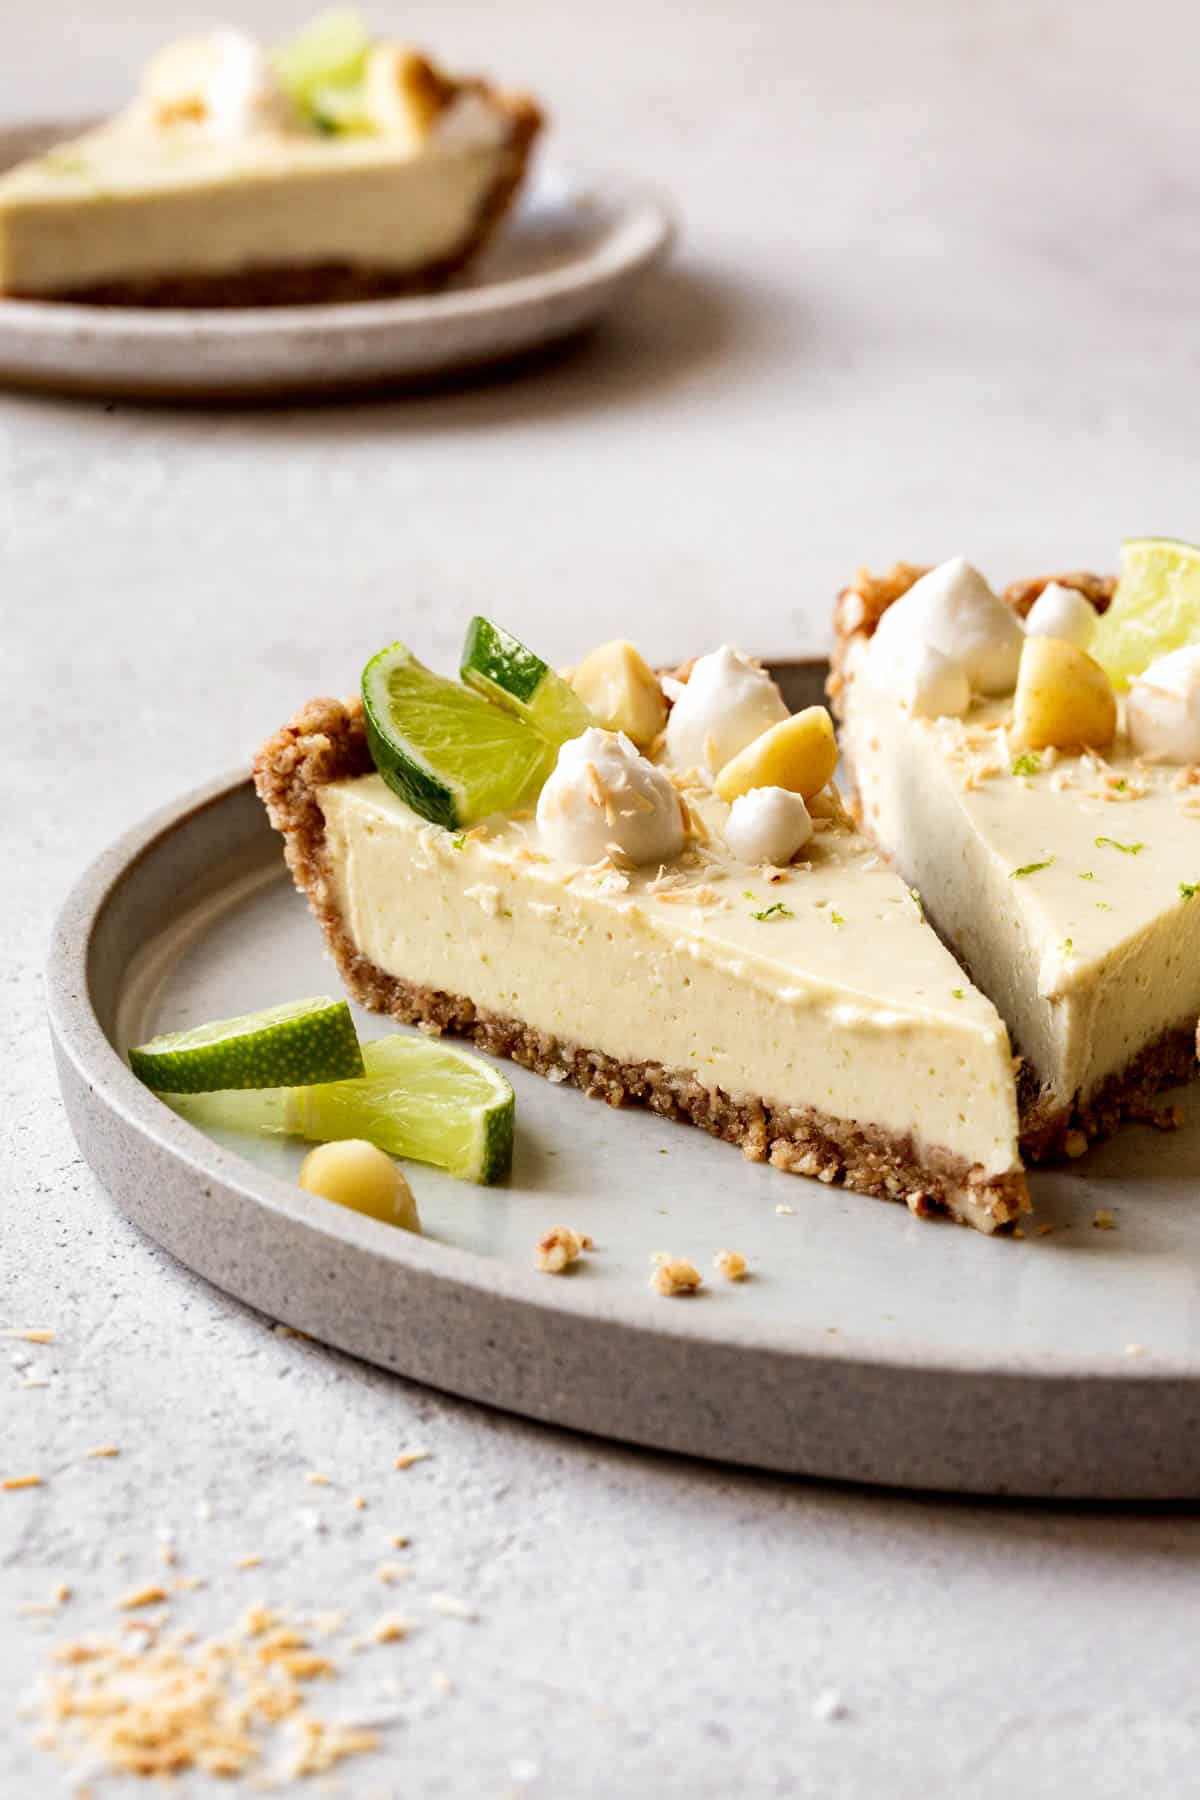 slice of vegan key lime pie, side angle